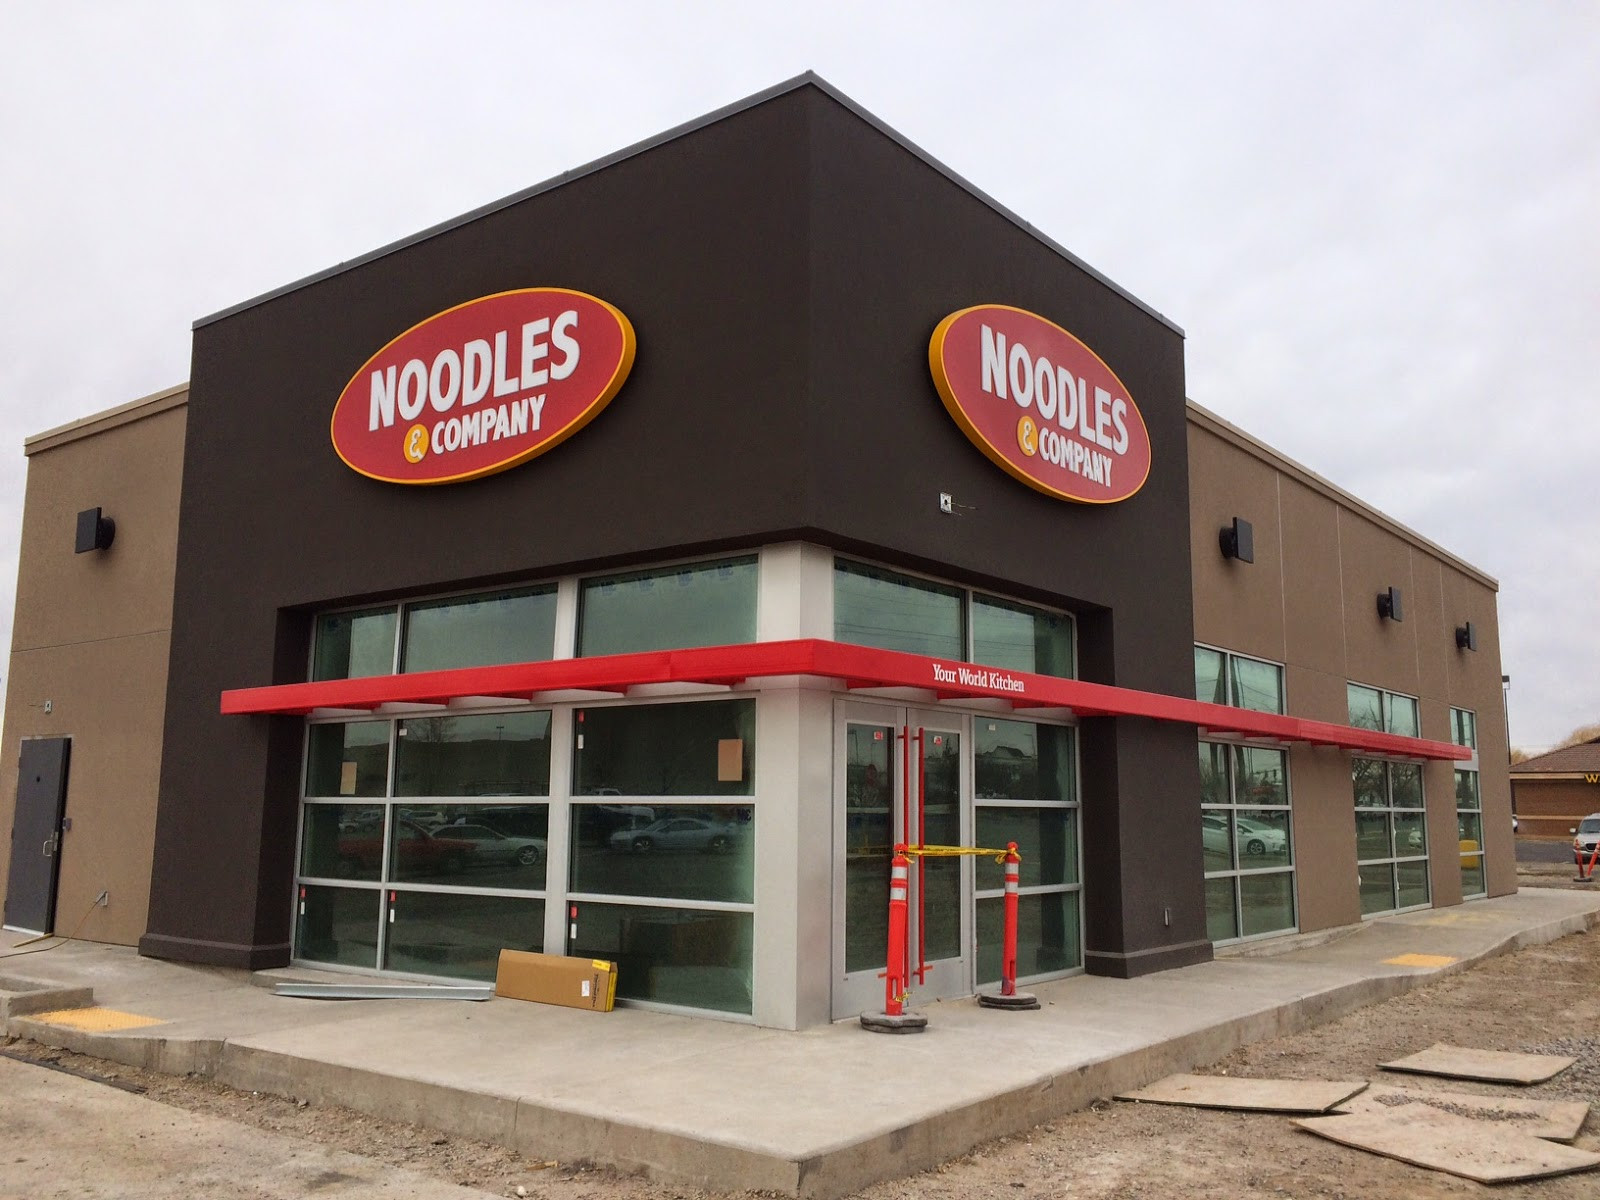 Noodles And Company Idaho Falls  BizMojo Idaho Noodles & pany plans May 4 opening in